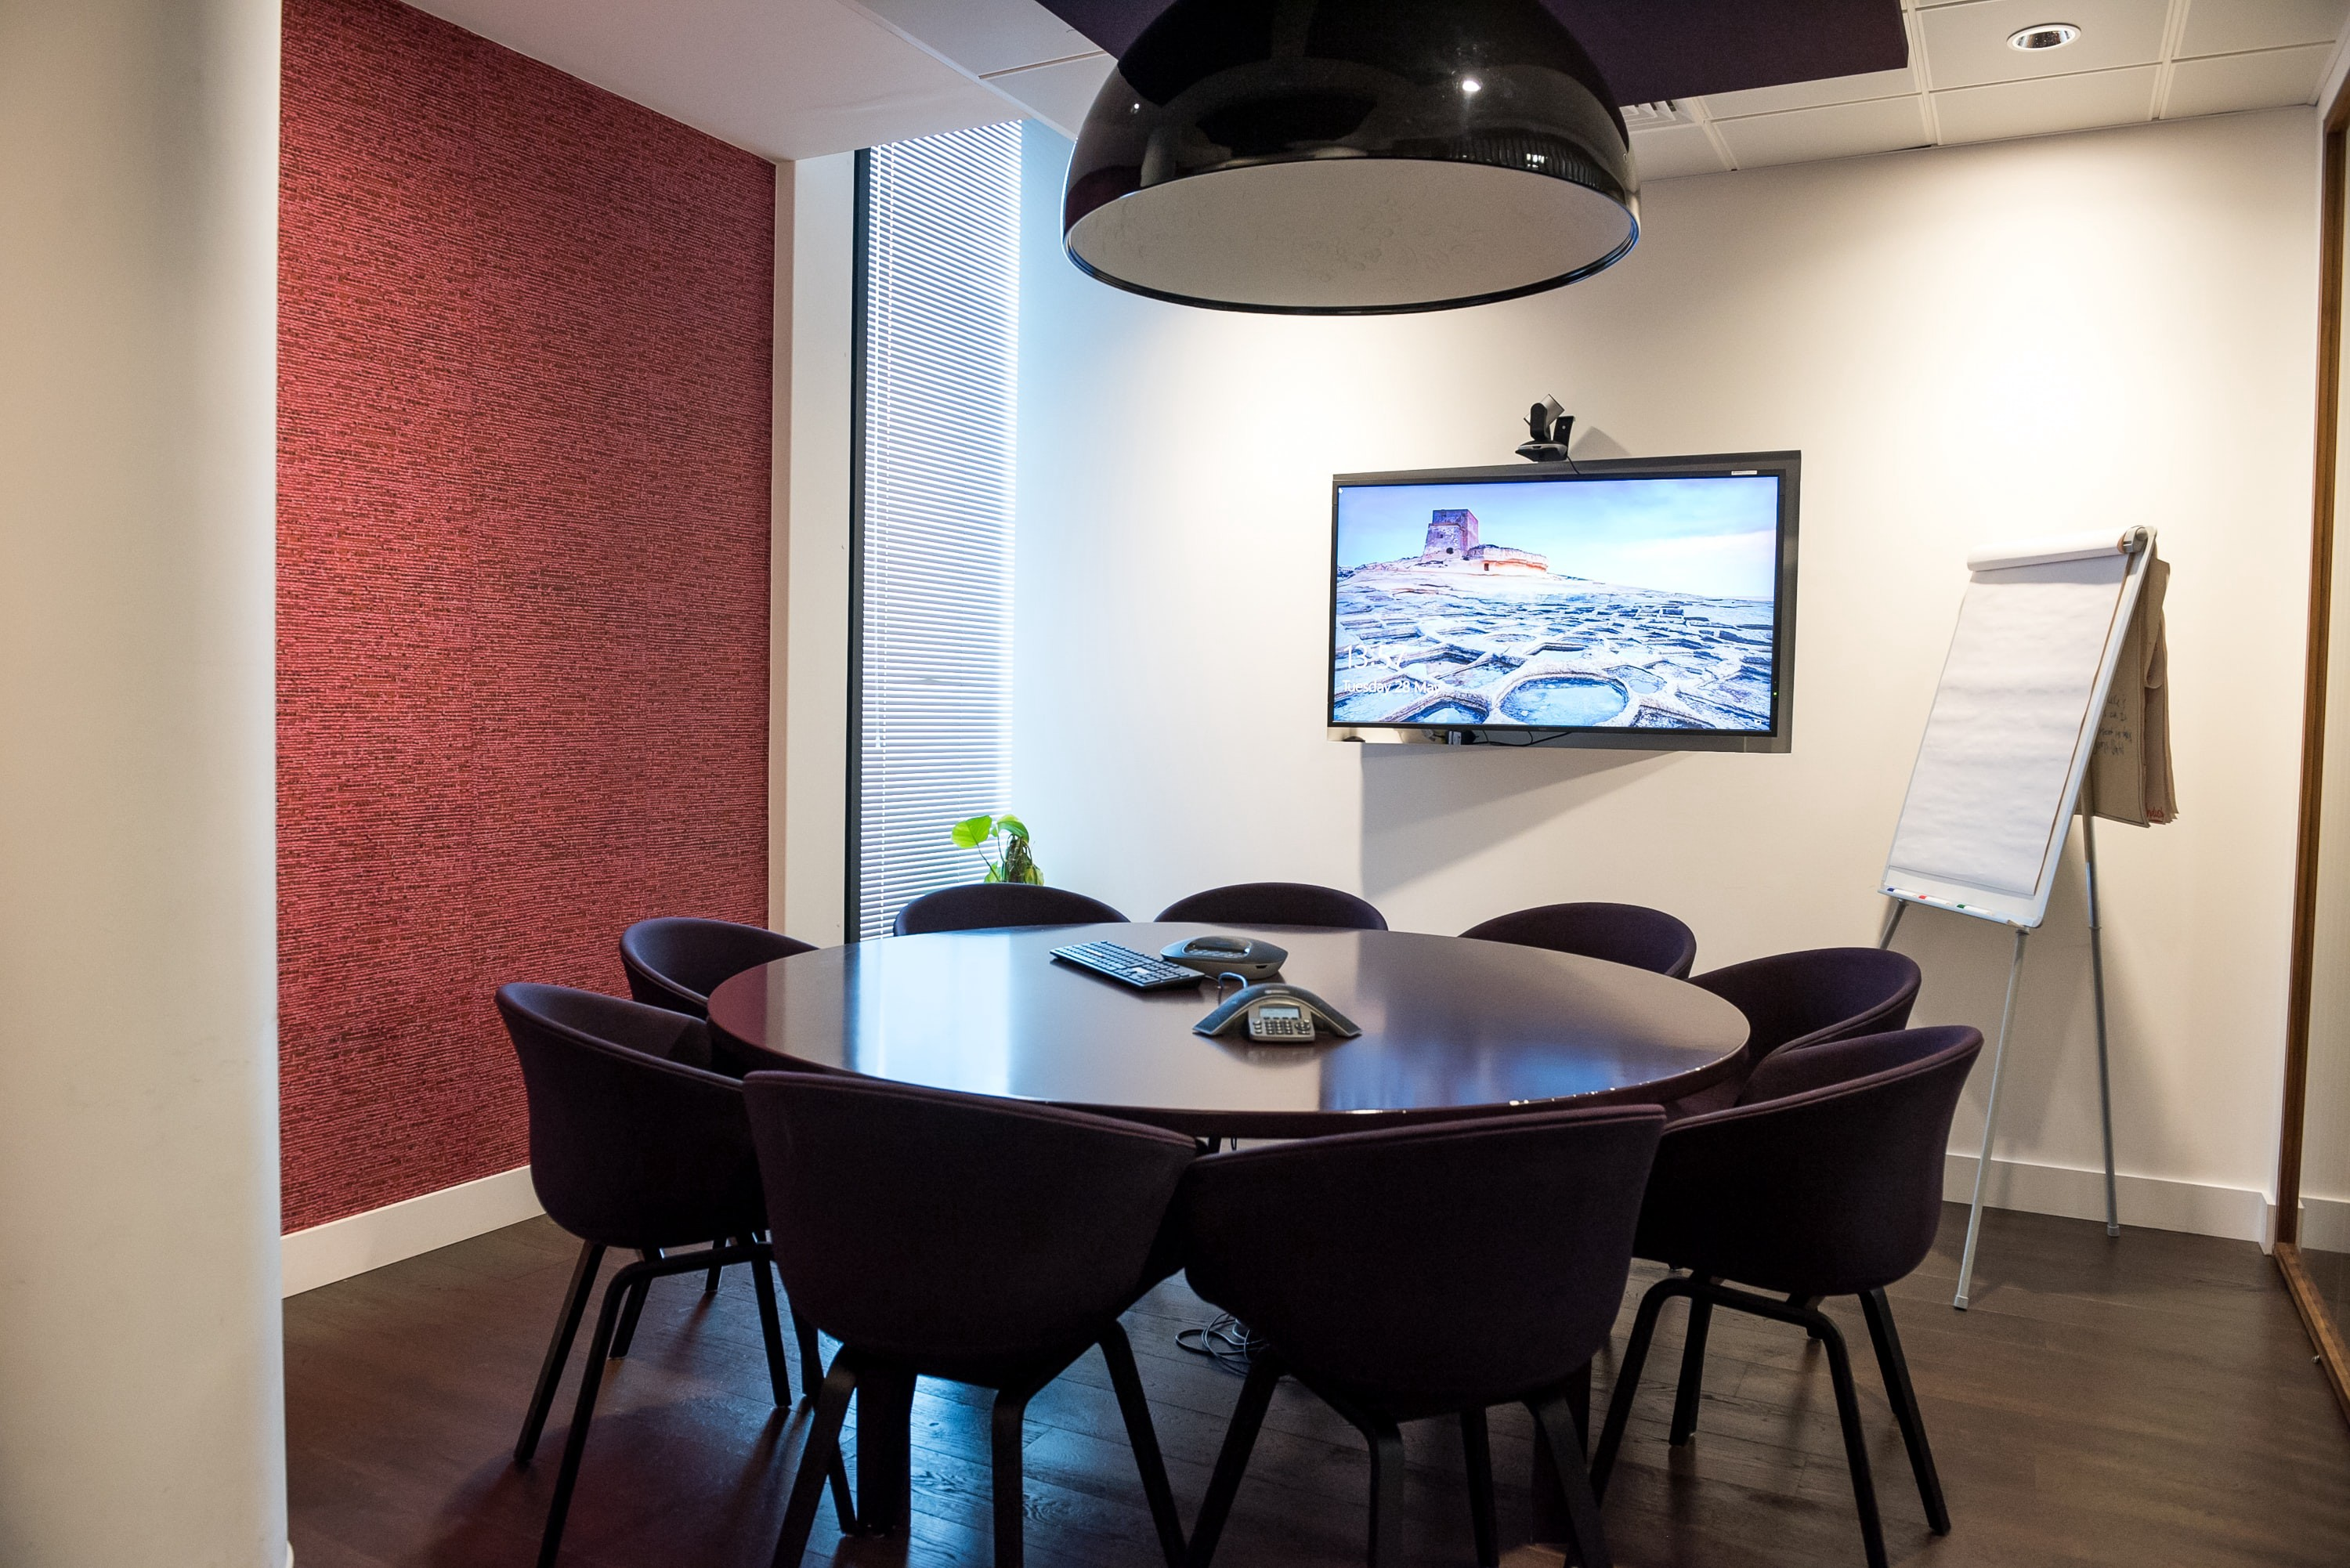 Conference room with video conferencing setup